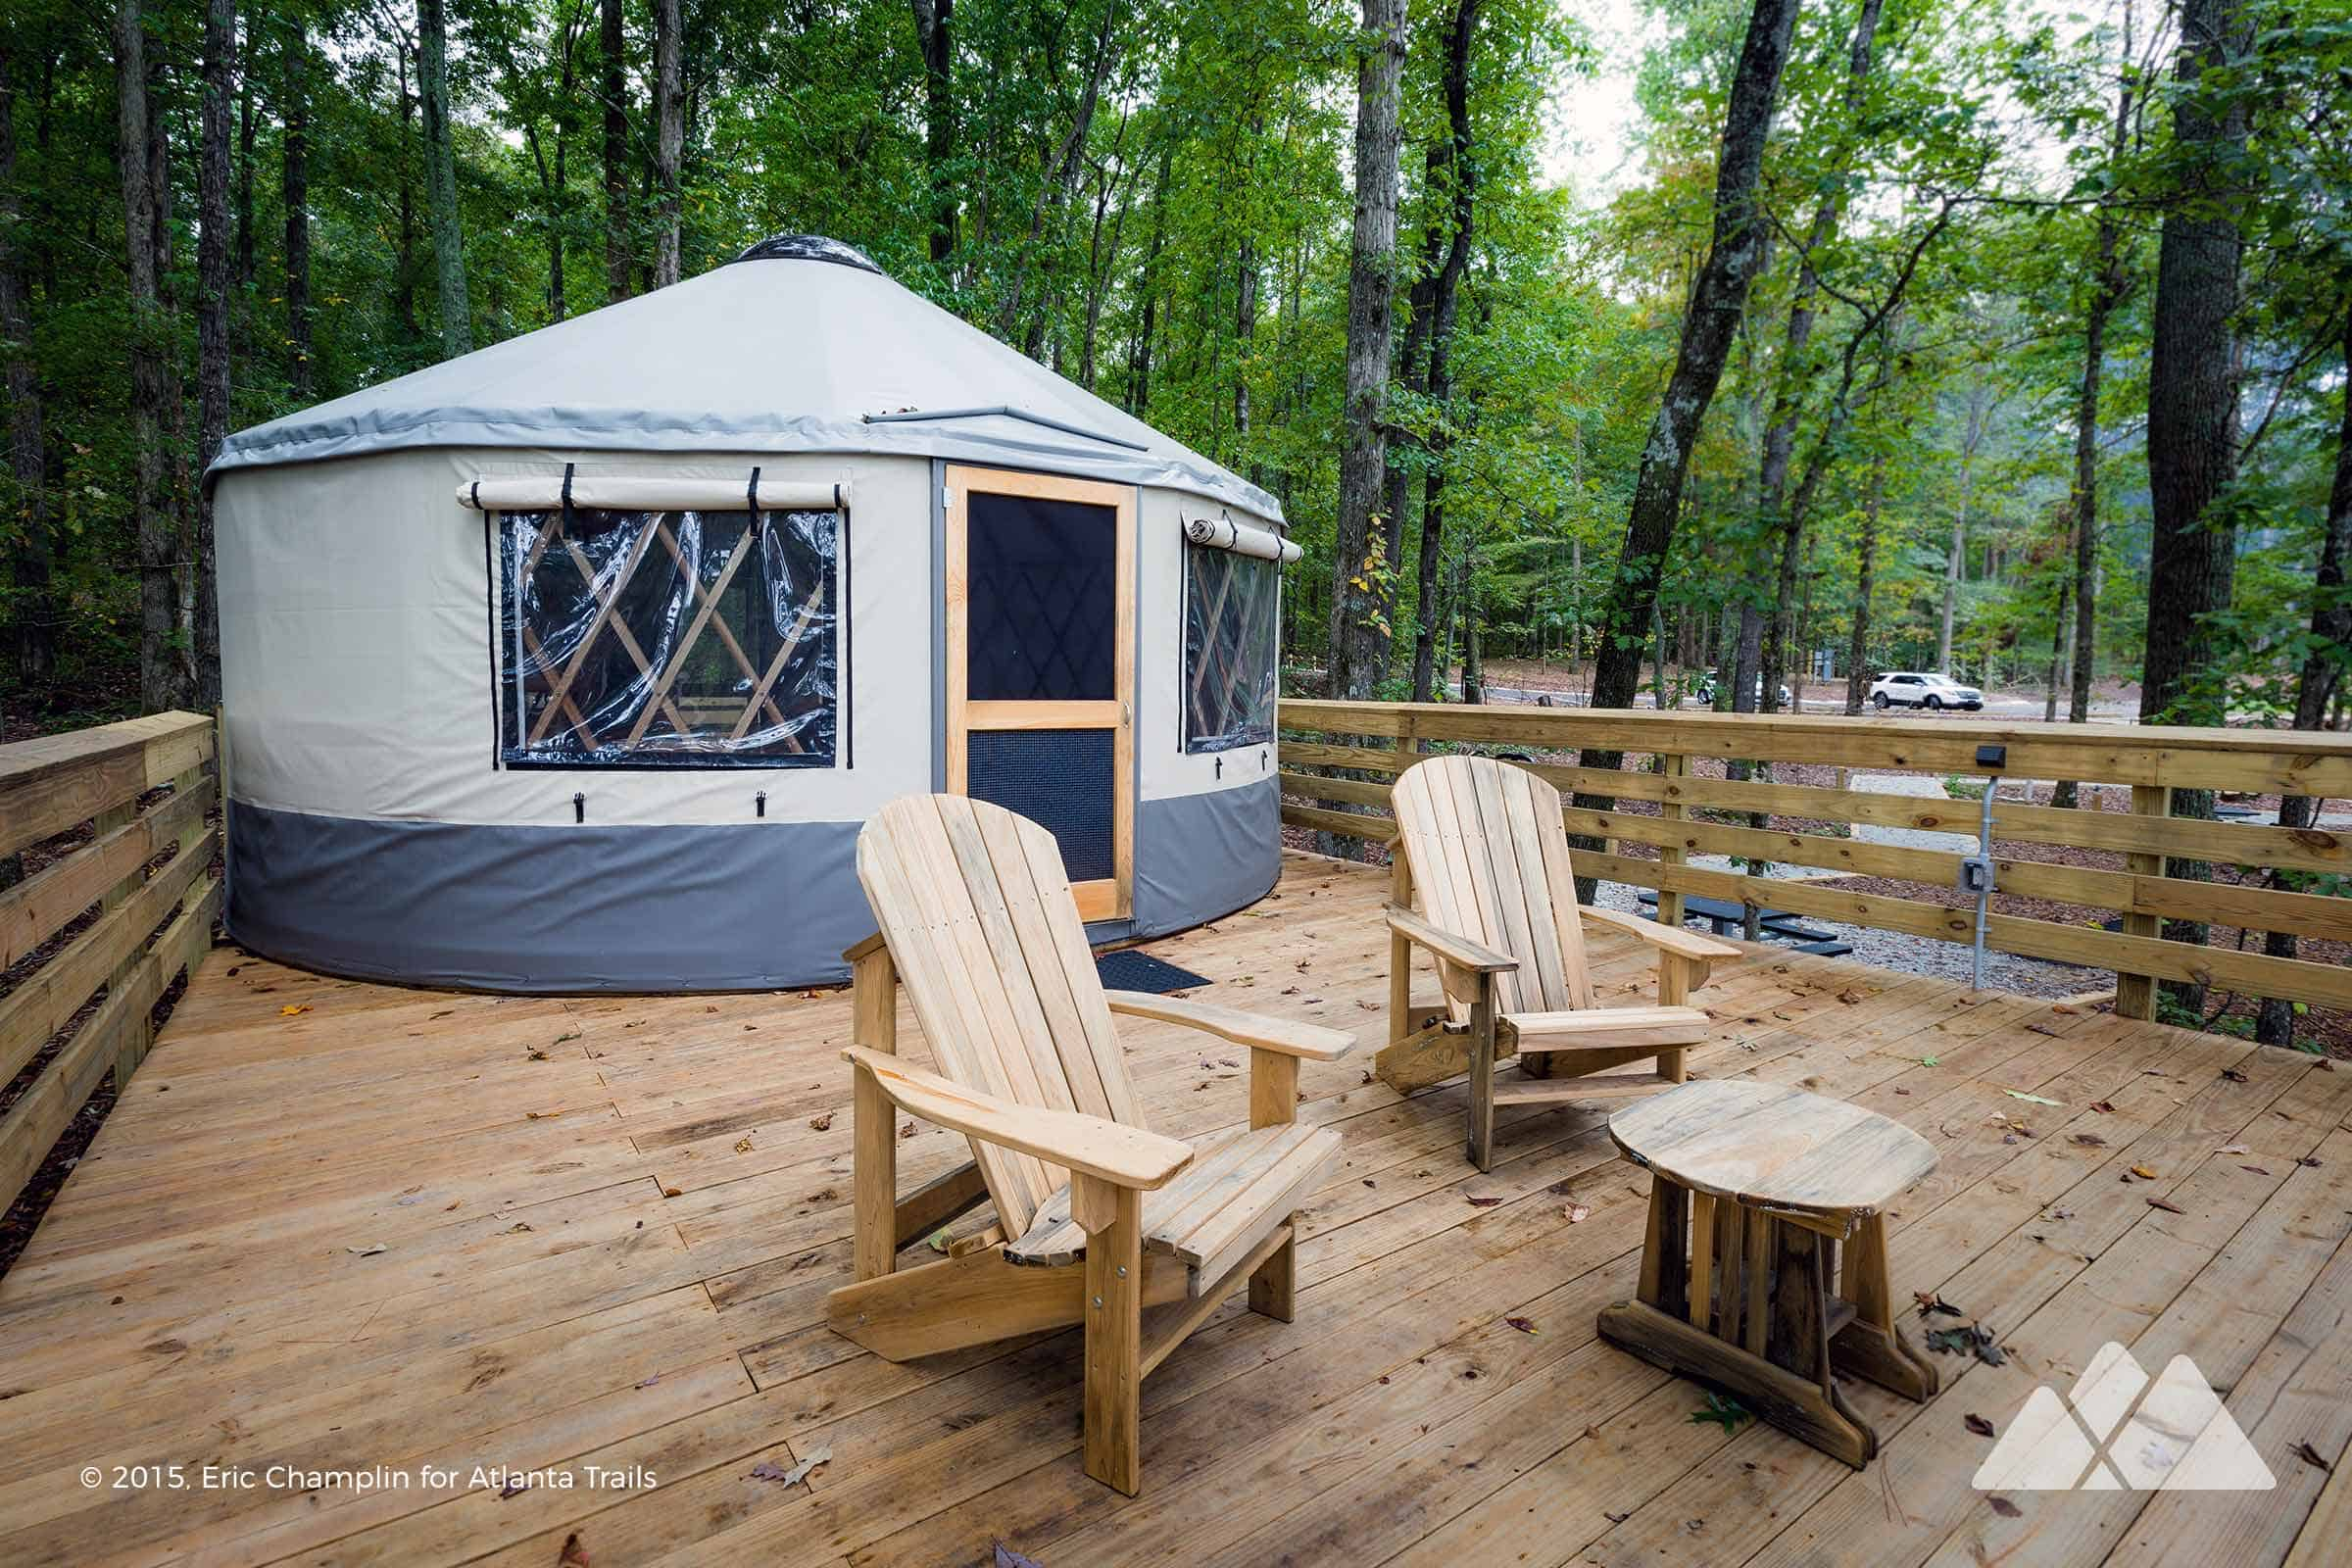 Yurt Camping At Sweetwater Creek State Park Atlanta Trails See your favorite wedding tents and teepee tents discounted & on sale. yurt camping at sweetwater creek state